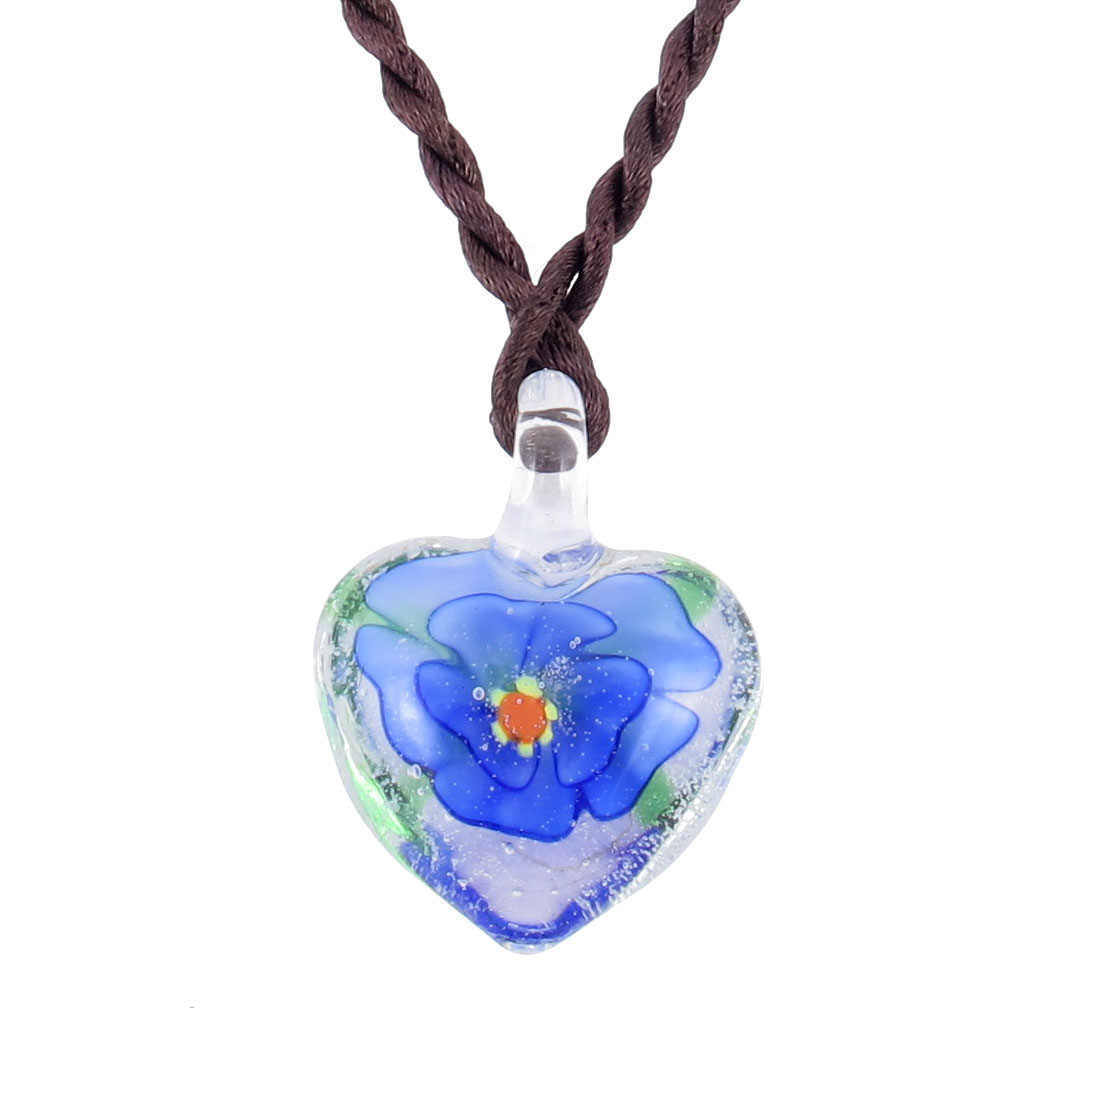 Knot Closure Rope 3D Flower Heart Style Glass Pendant Necklace